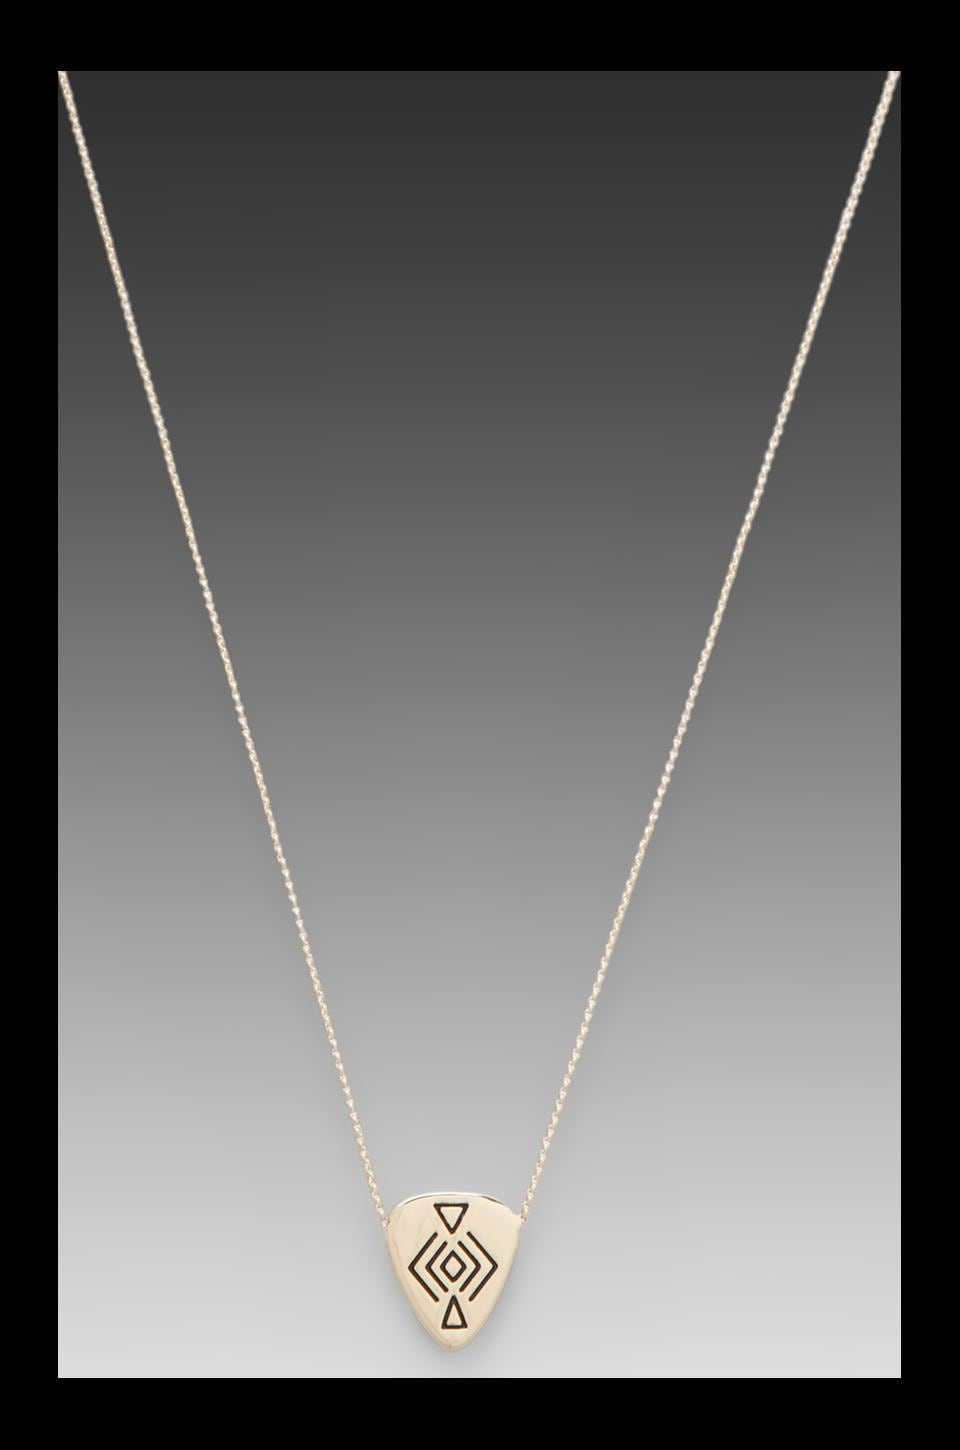 House of Harlow 1960 House of Harlow Mini Plectra Necklace in Gold